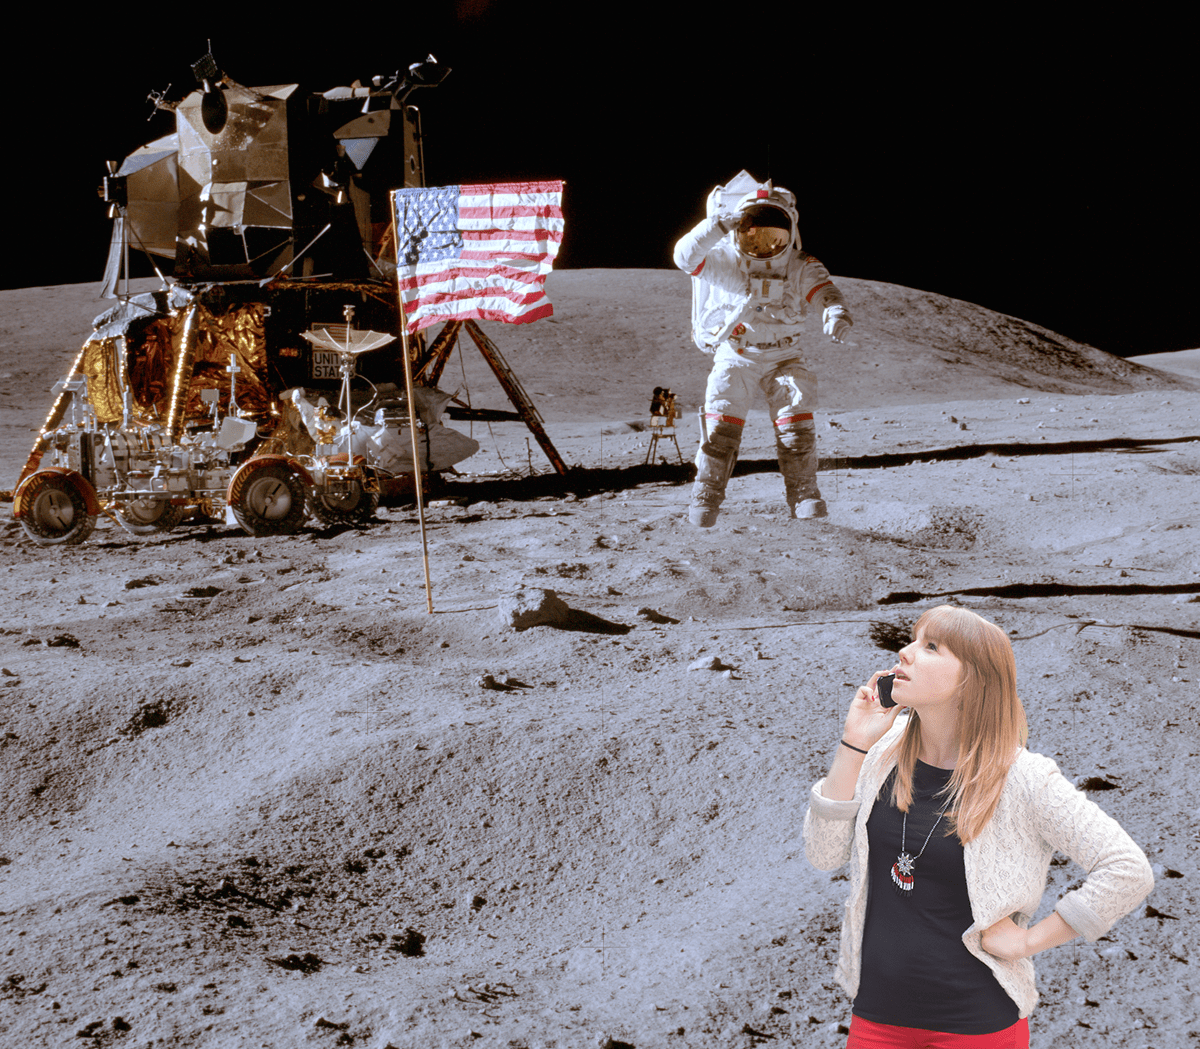 brittany-on-the-moon.png